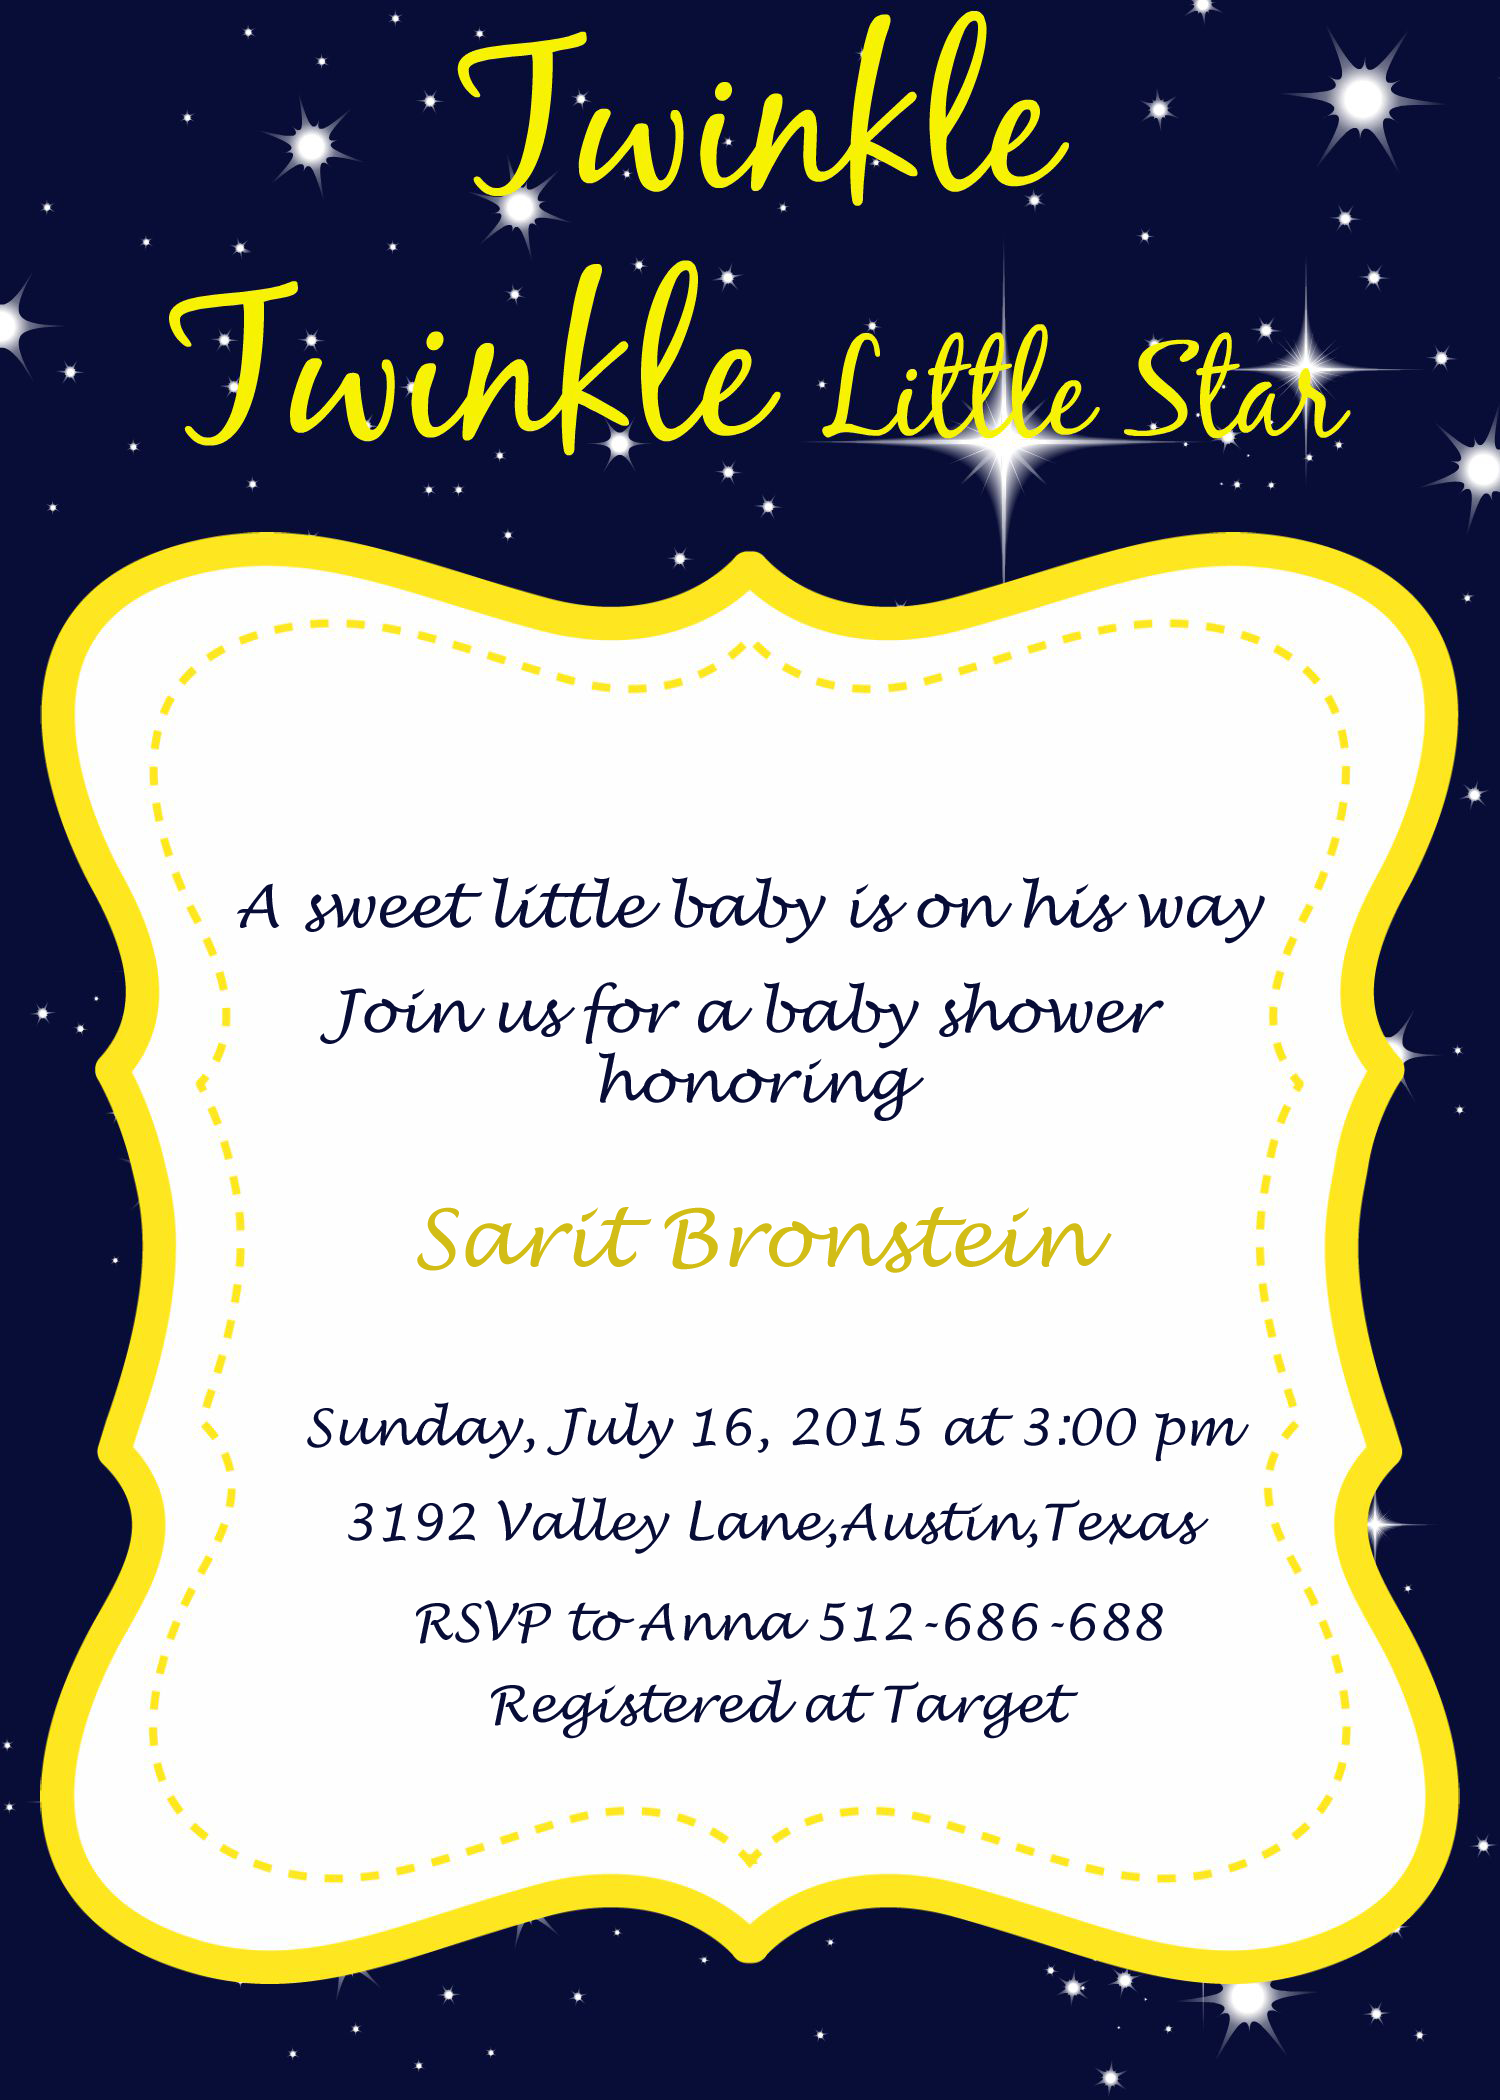 Twinkle Twinkle Baby Shower Ideas - My Practical Baby Shower Guide - Free Printable Twinkle Twinkle Little Star Baby Shower Invitations